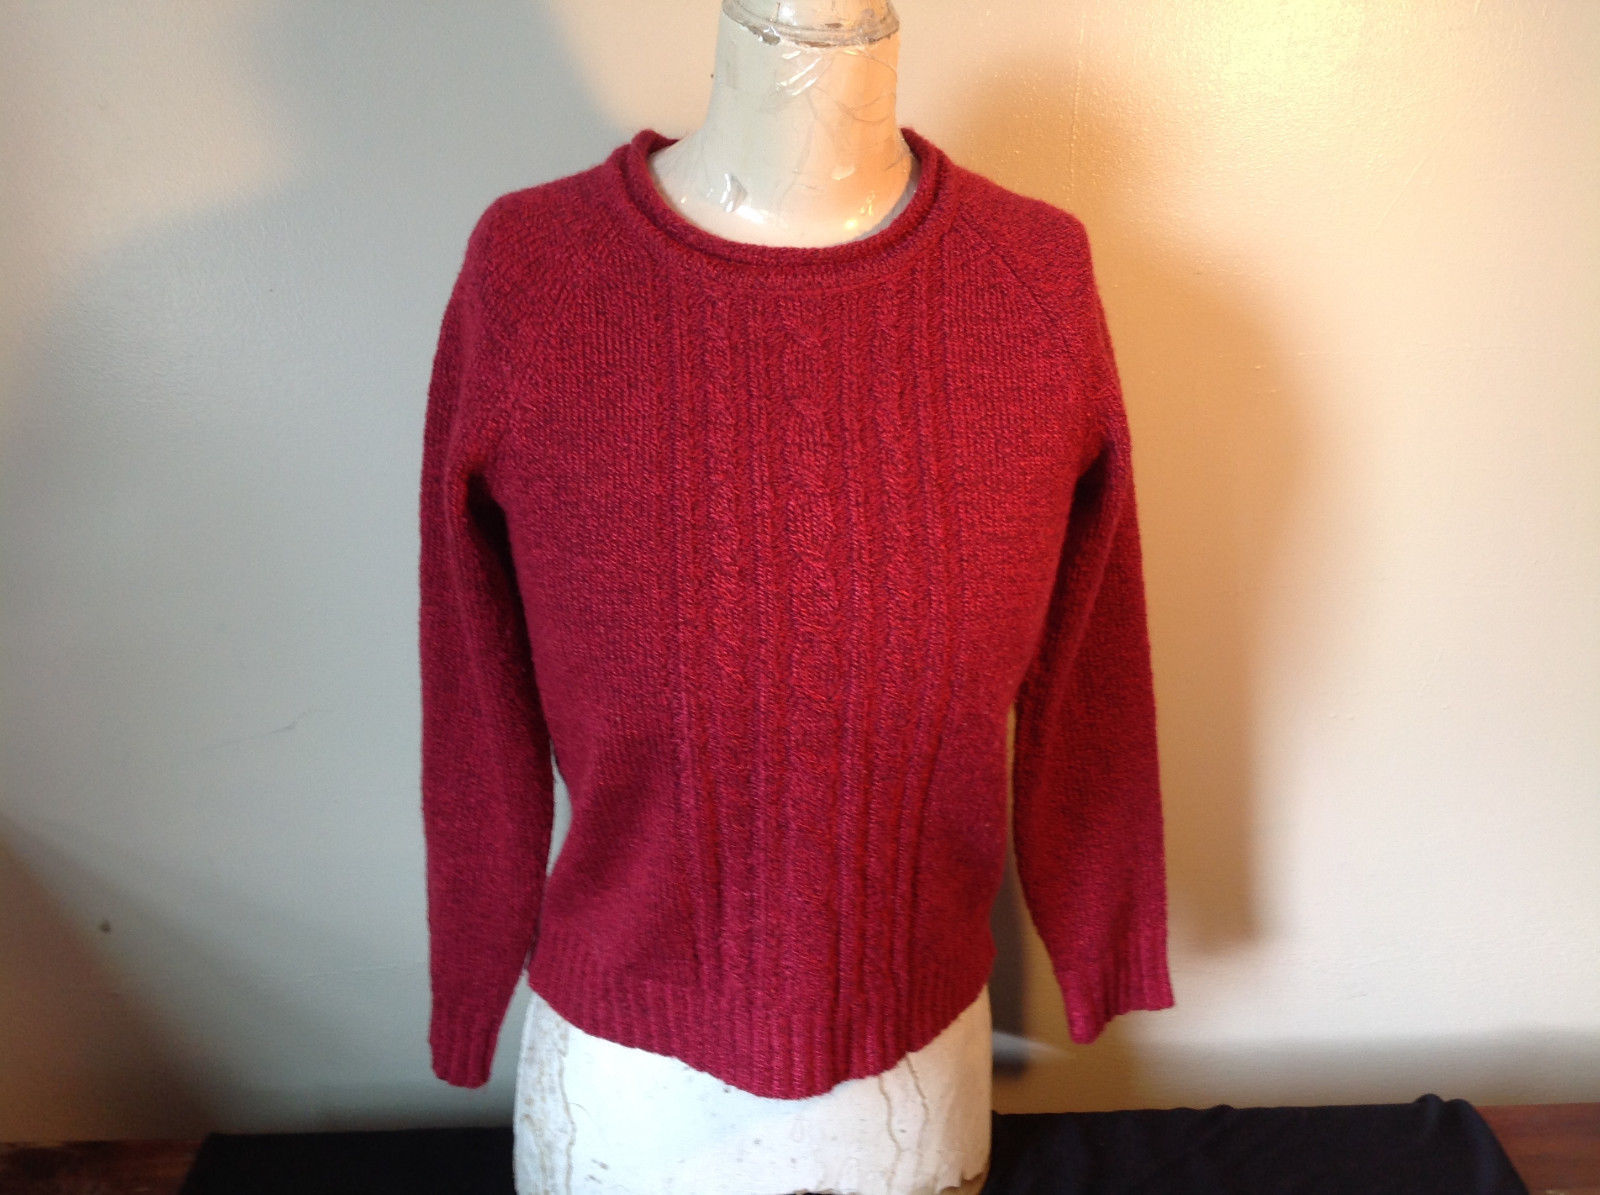 Red with Black Specks Long Sleeve Sweater Good Condition See Measurements Below